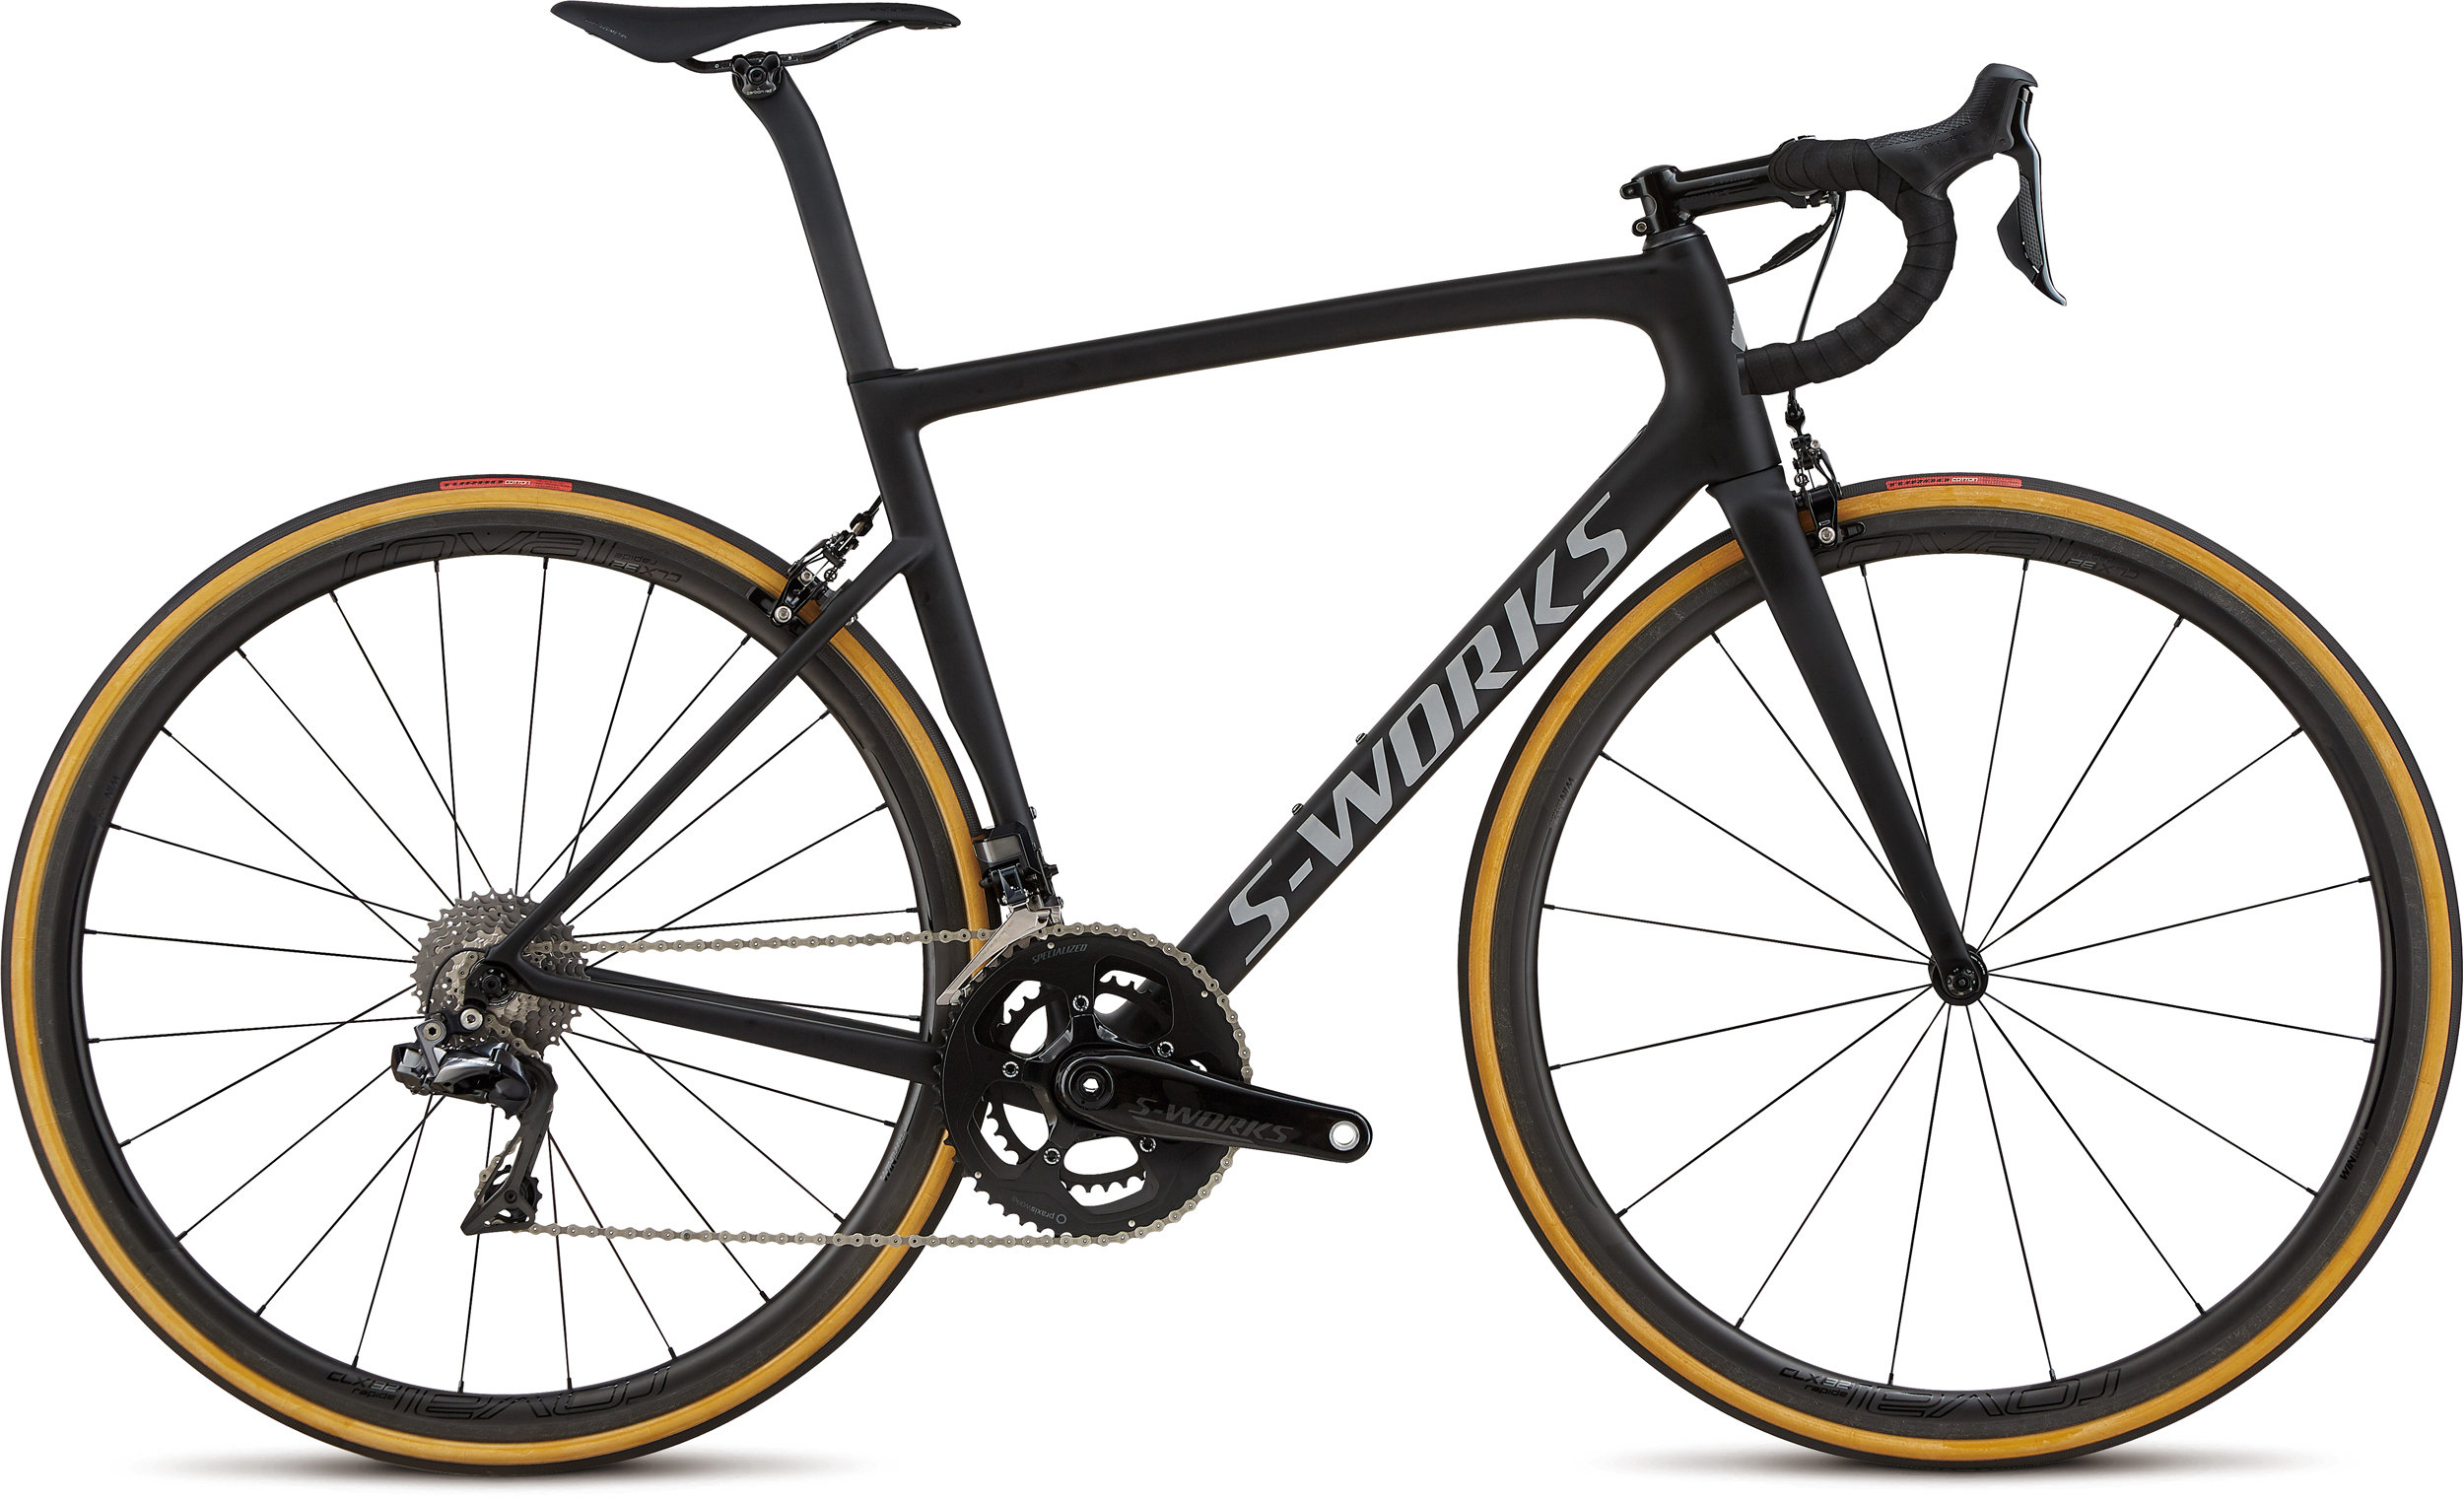 Specialized Men´s S-Works Tarmac Ultralight Ultralight Monocoat Black/Silver Reflective/Clean 56 - Alpha Bikes